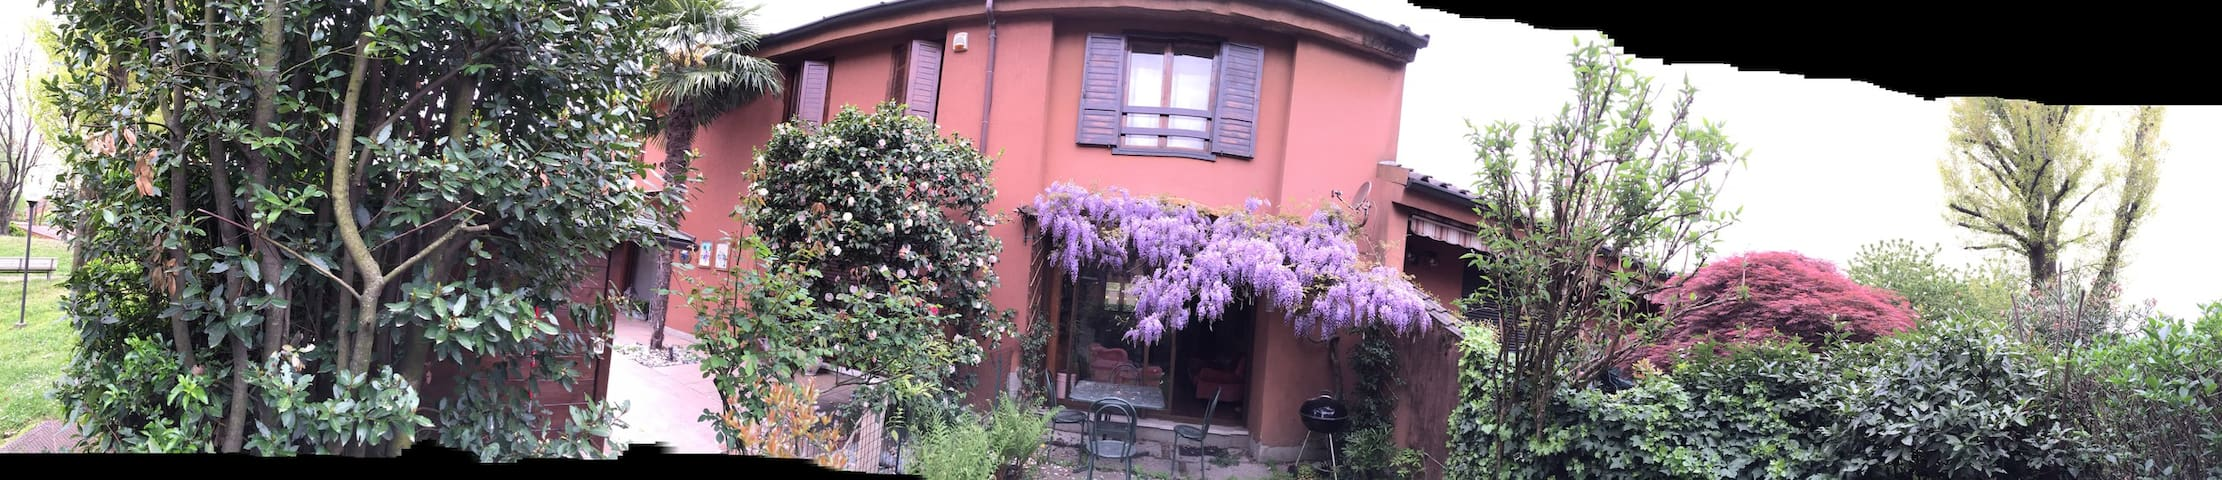 Glycine Villa 30 min from Milan